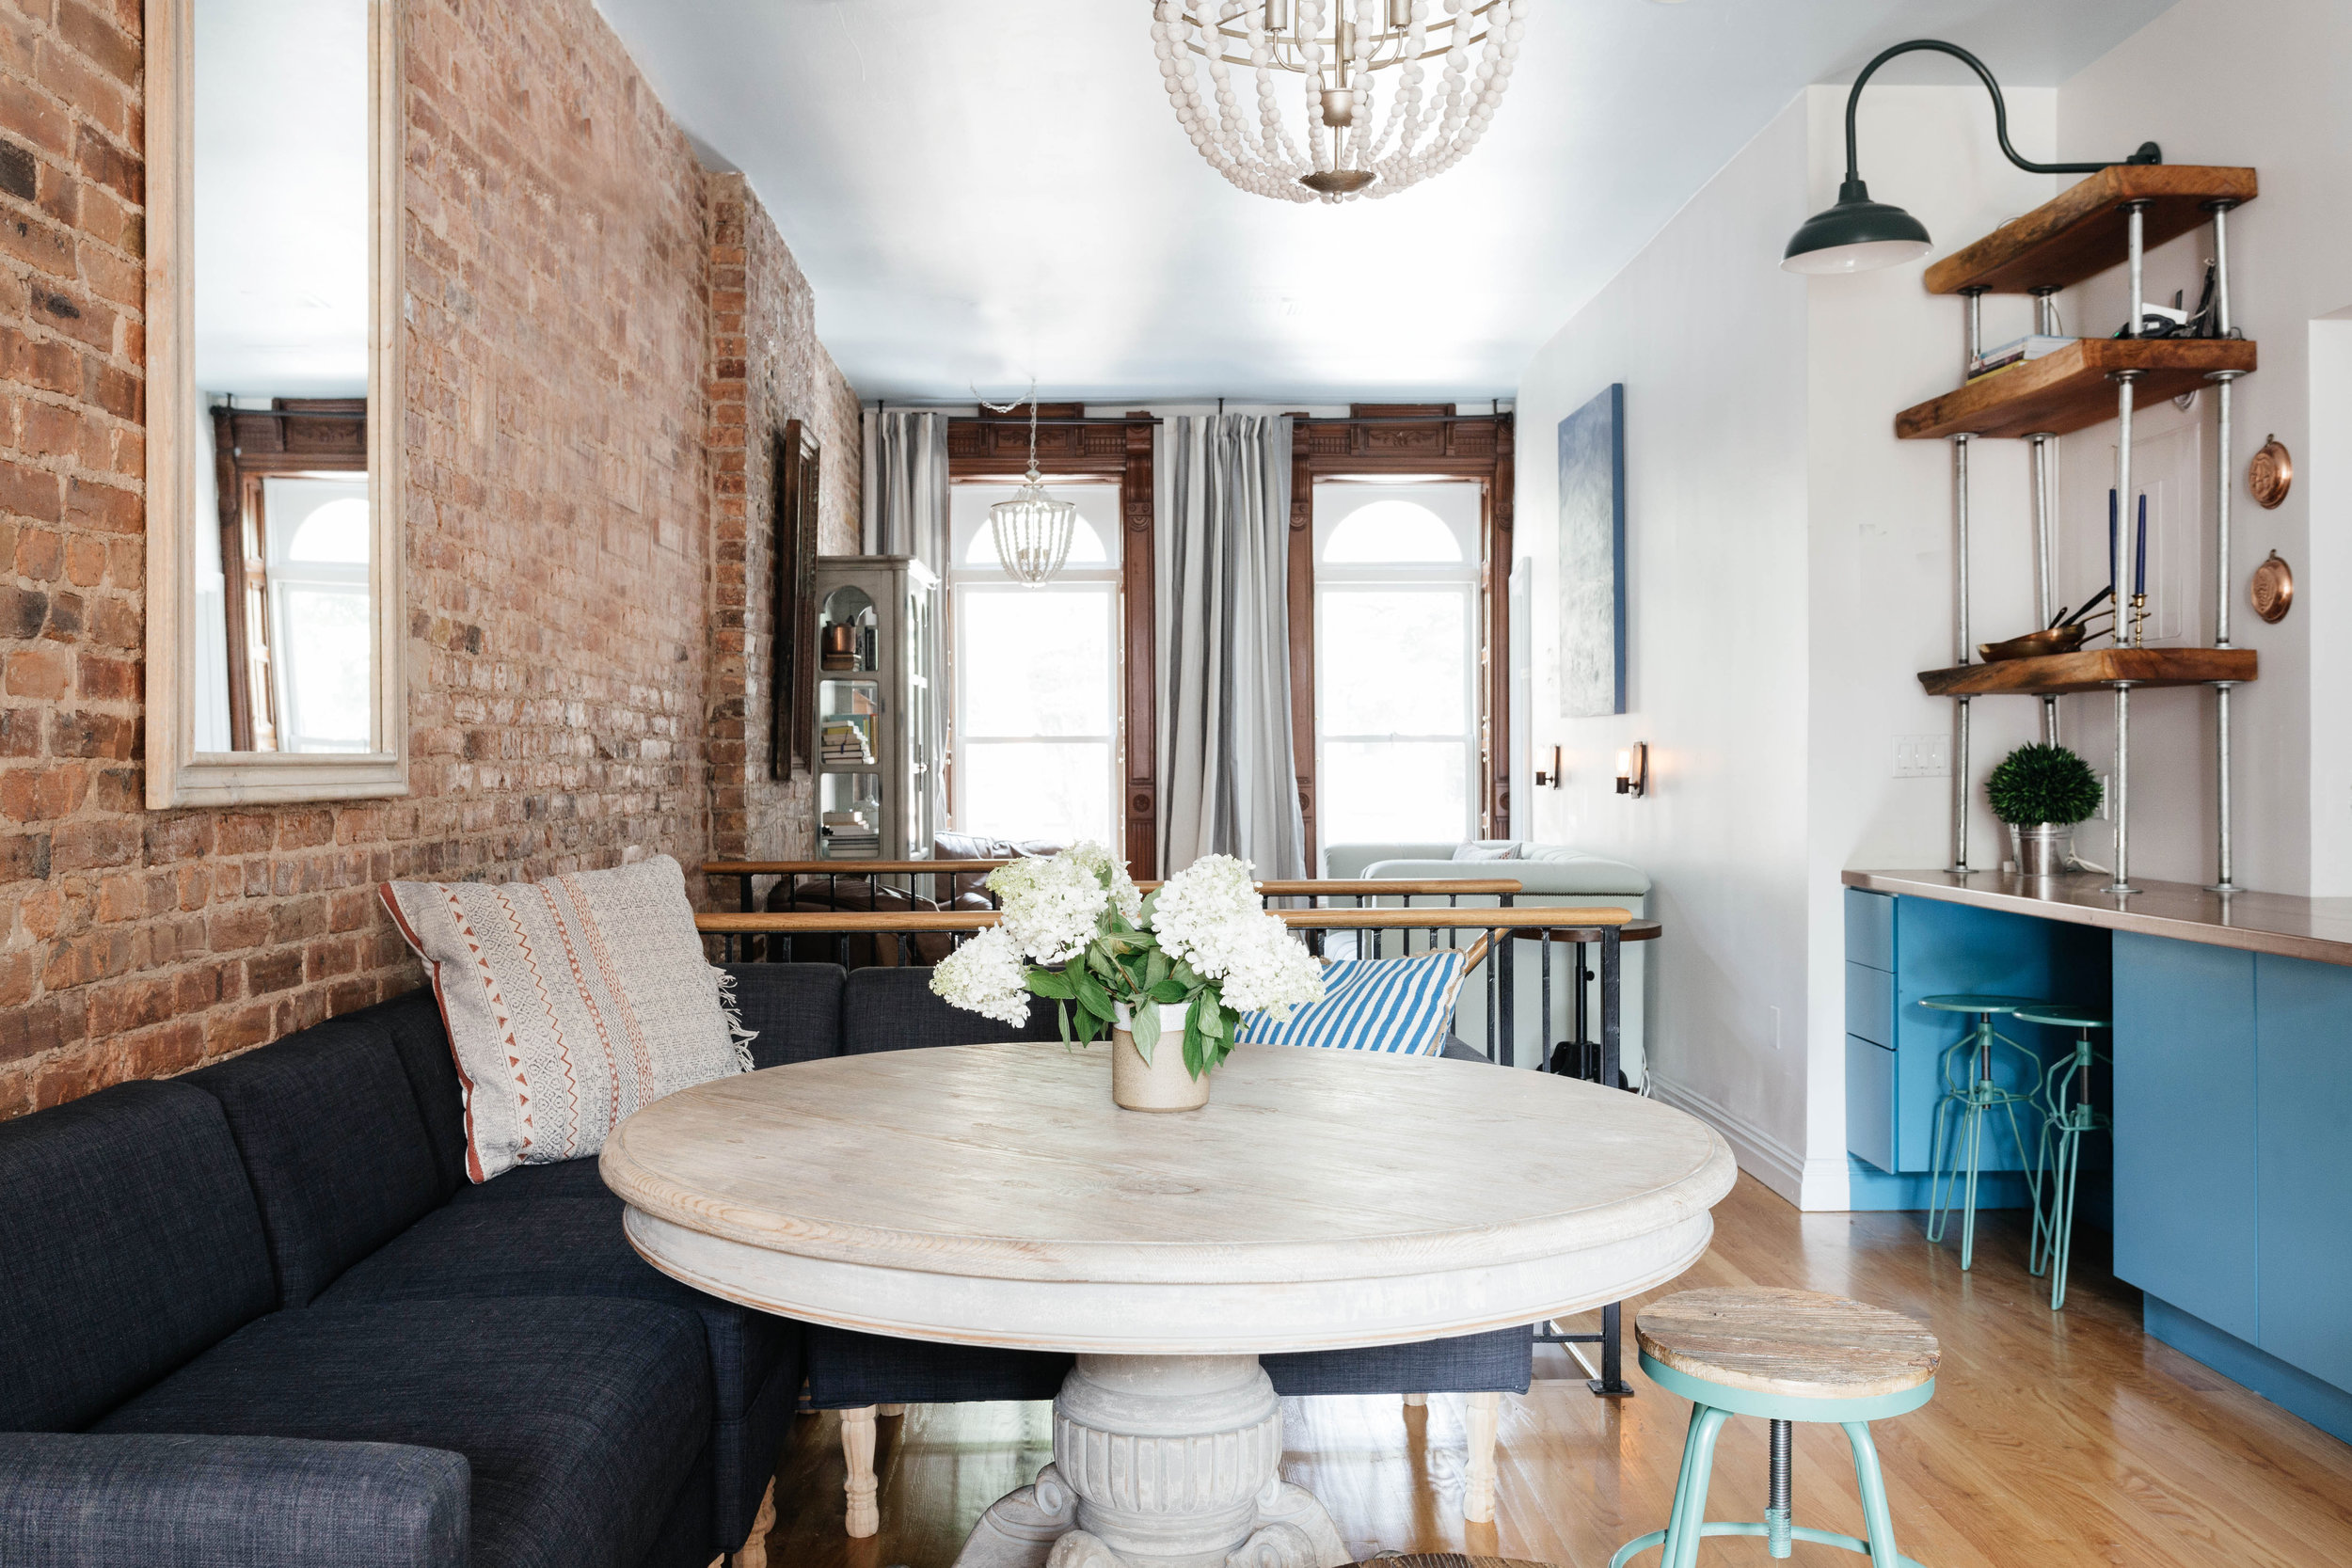 Living space with round wooden table